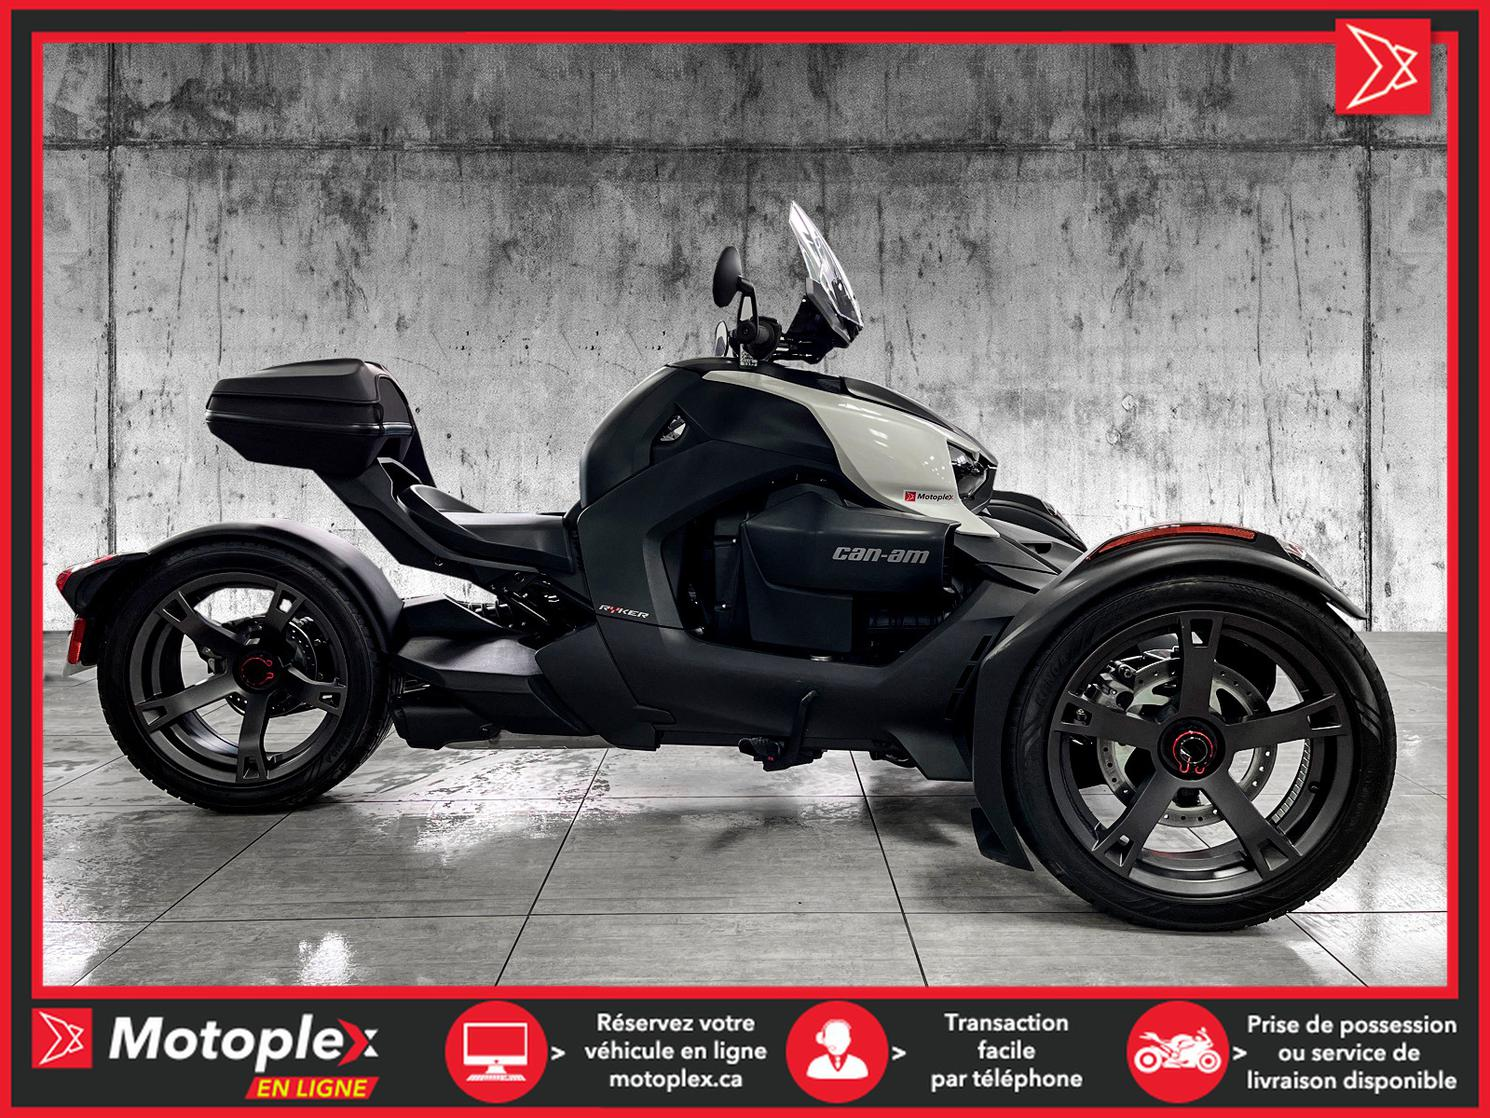 2020 Can-Am RYKER 600 ACE - 39$/SEMAINE